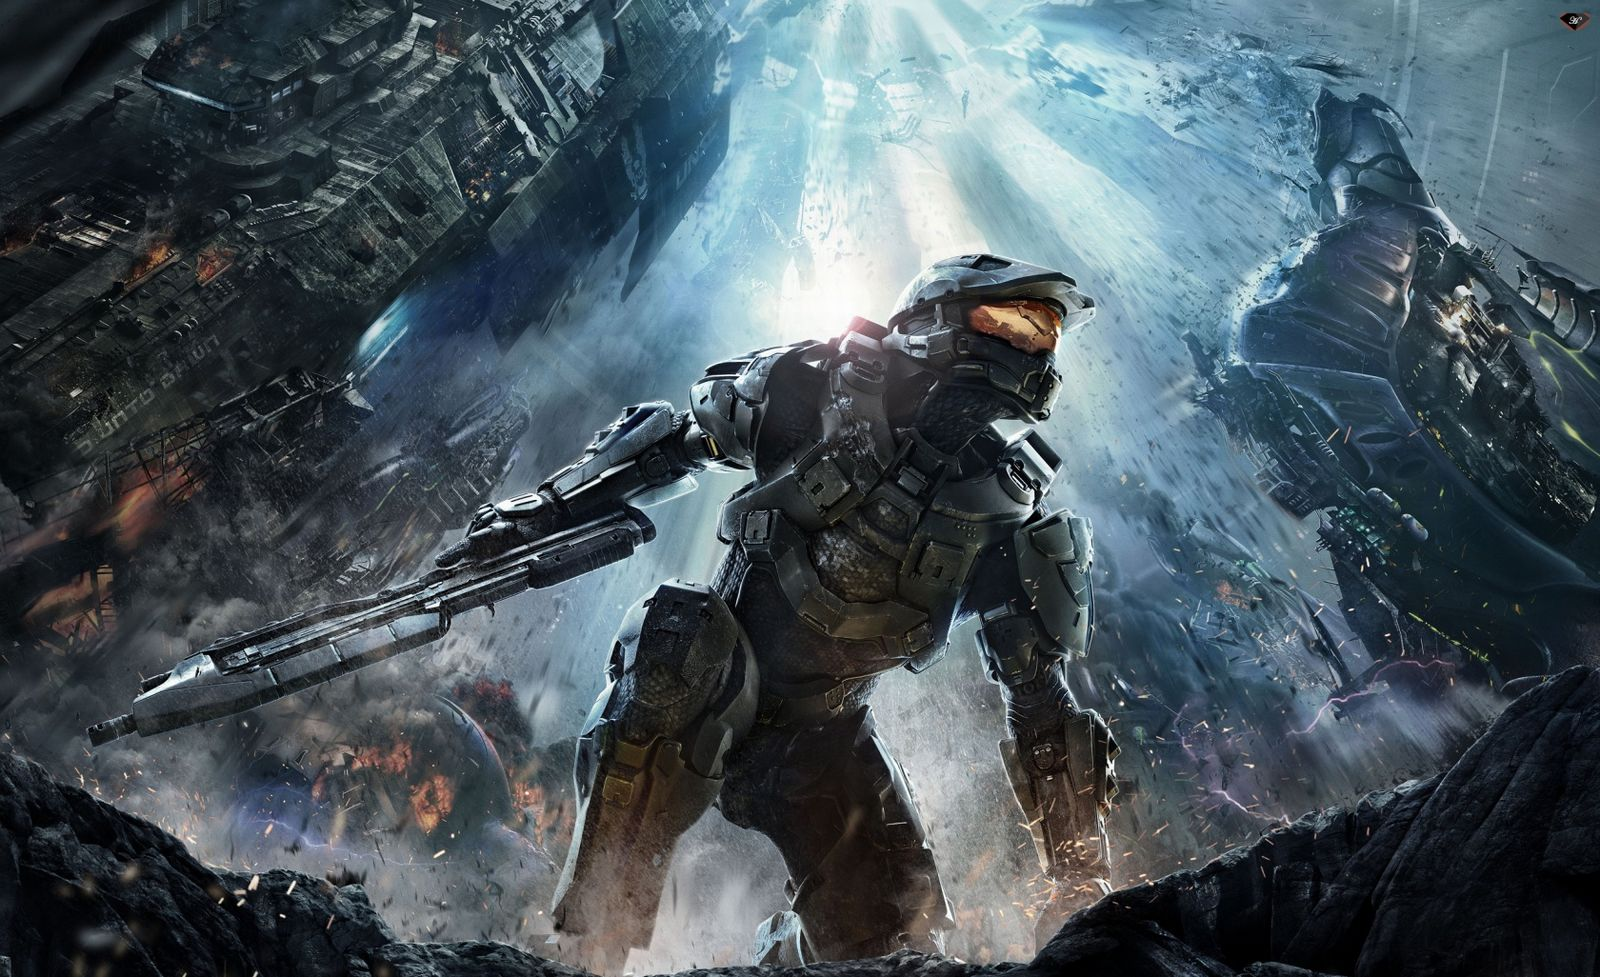 halo HD wallpaper